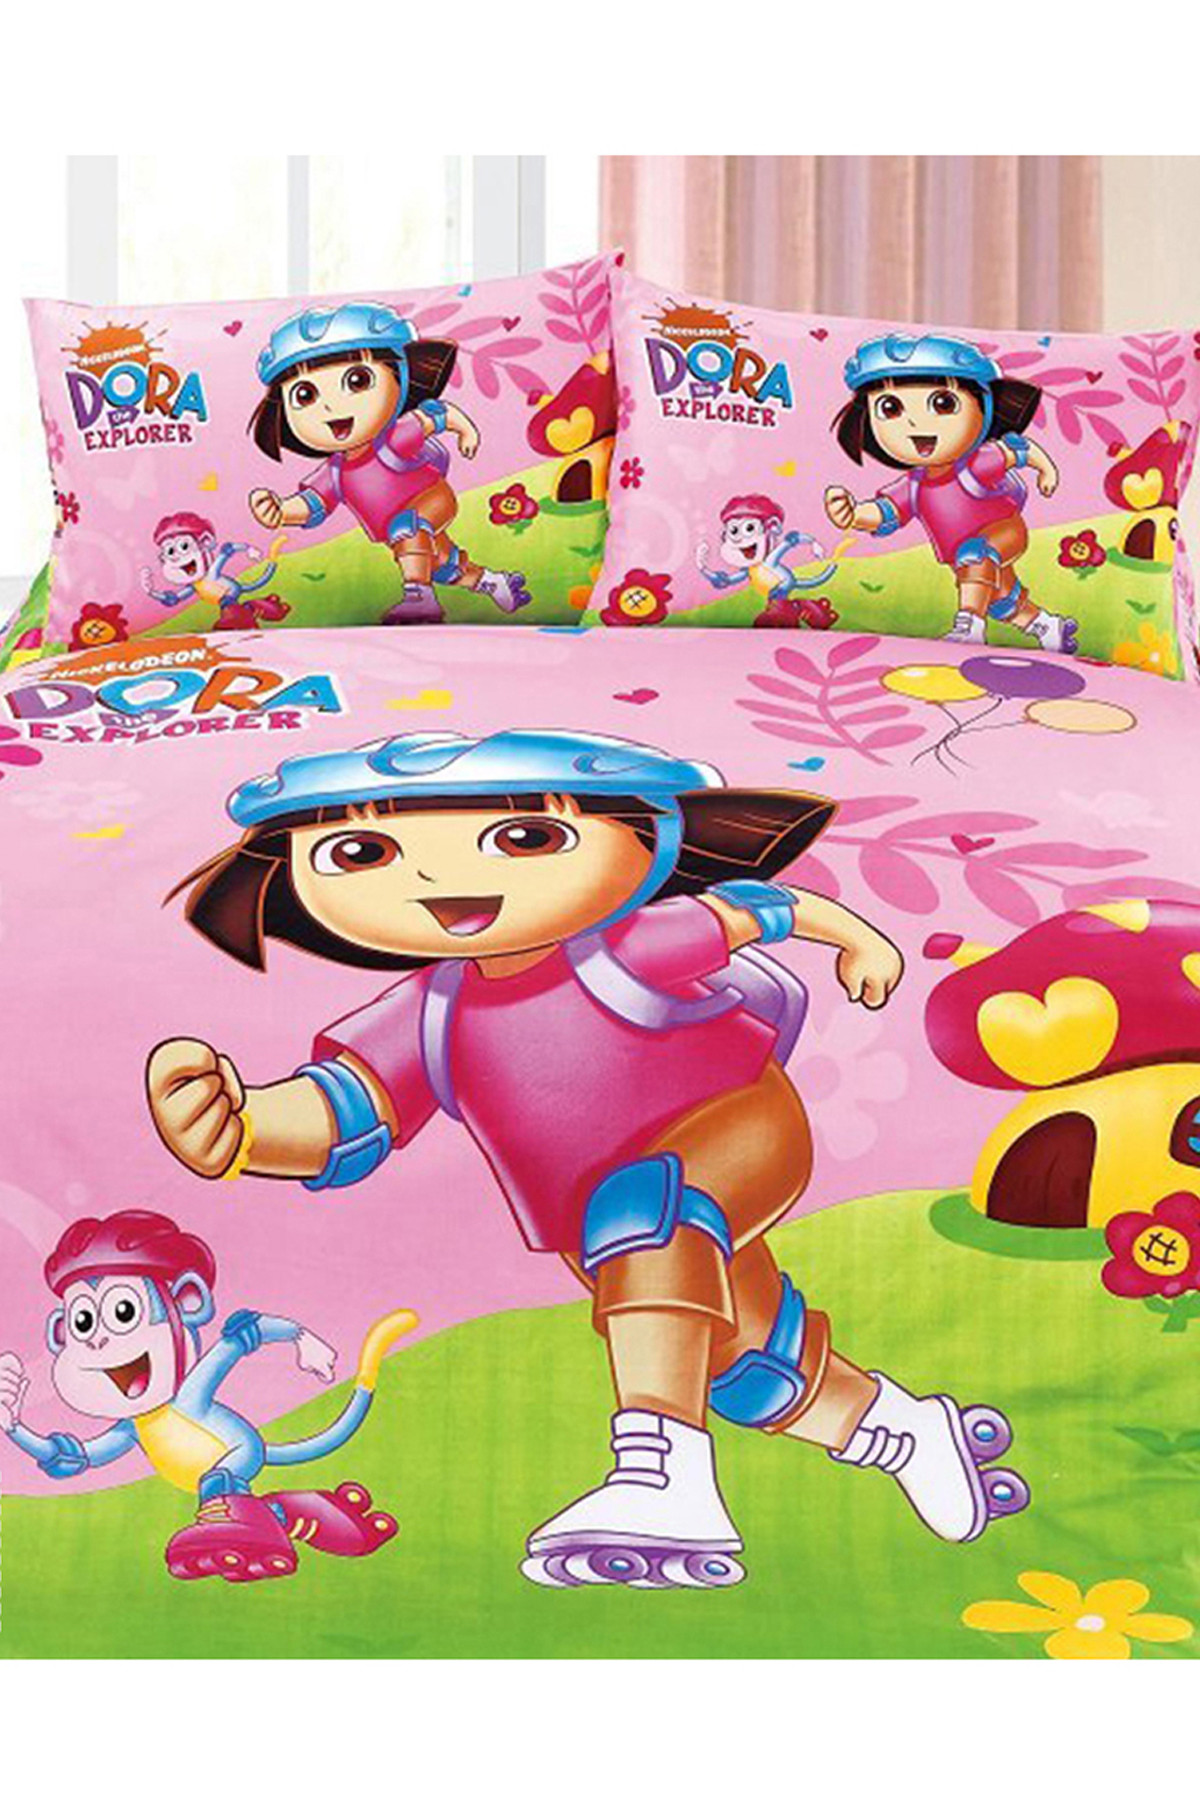 childrens bedroom set dora the explorer